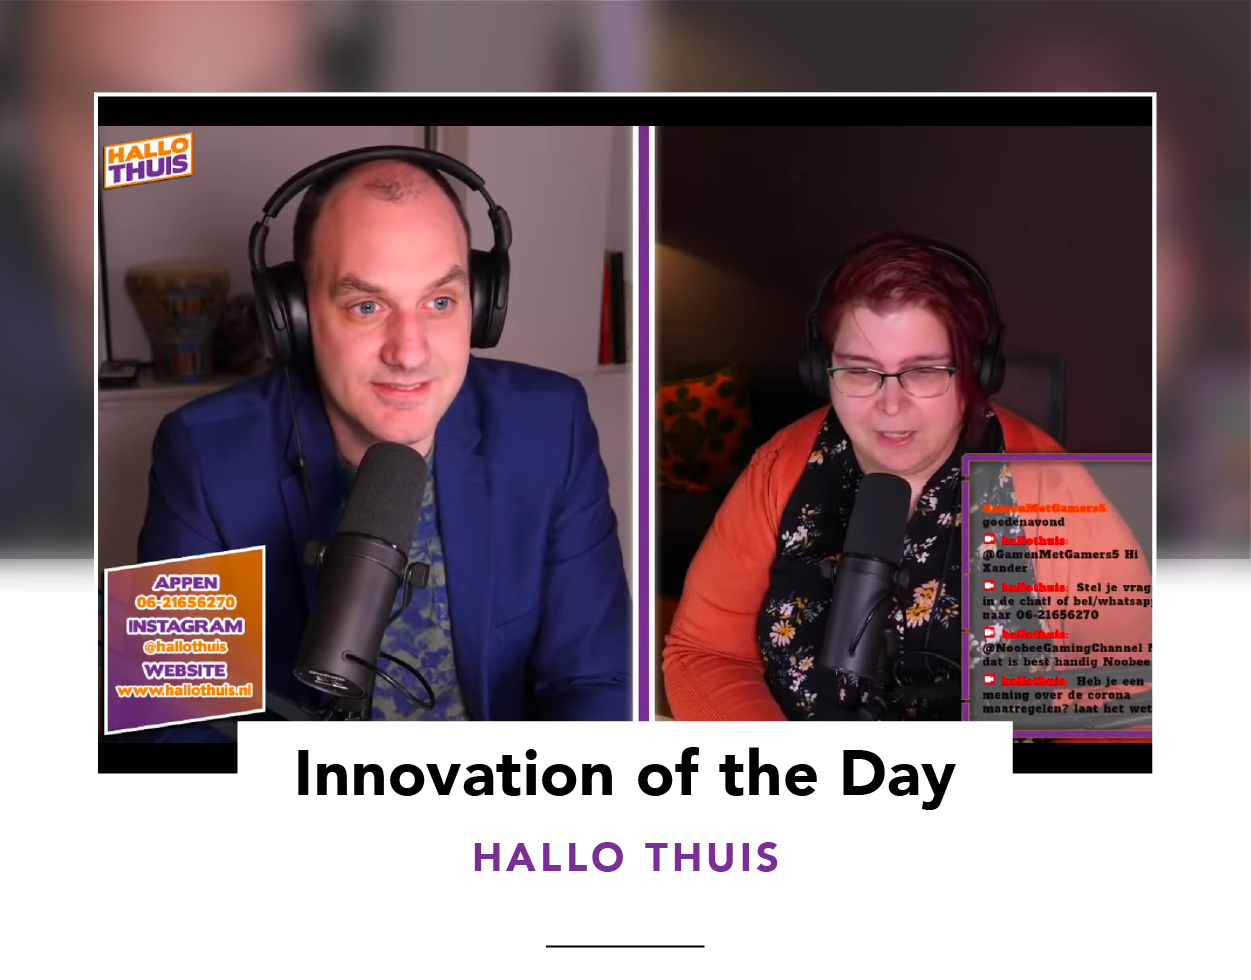 Screenshot of a live chat show presented by two Hello Thuis hosts